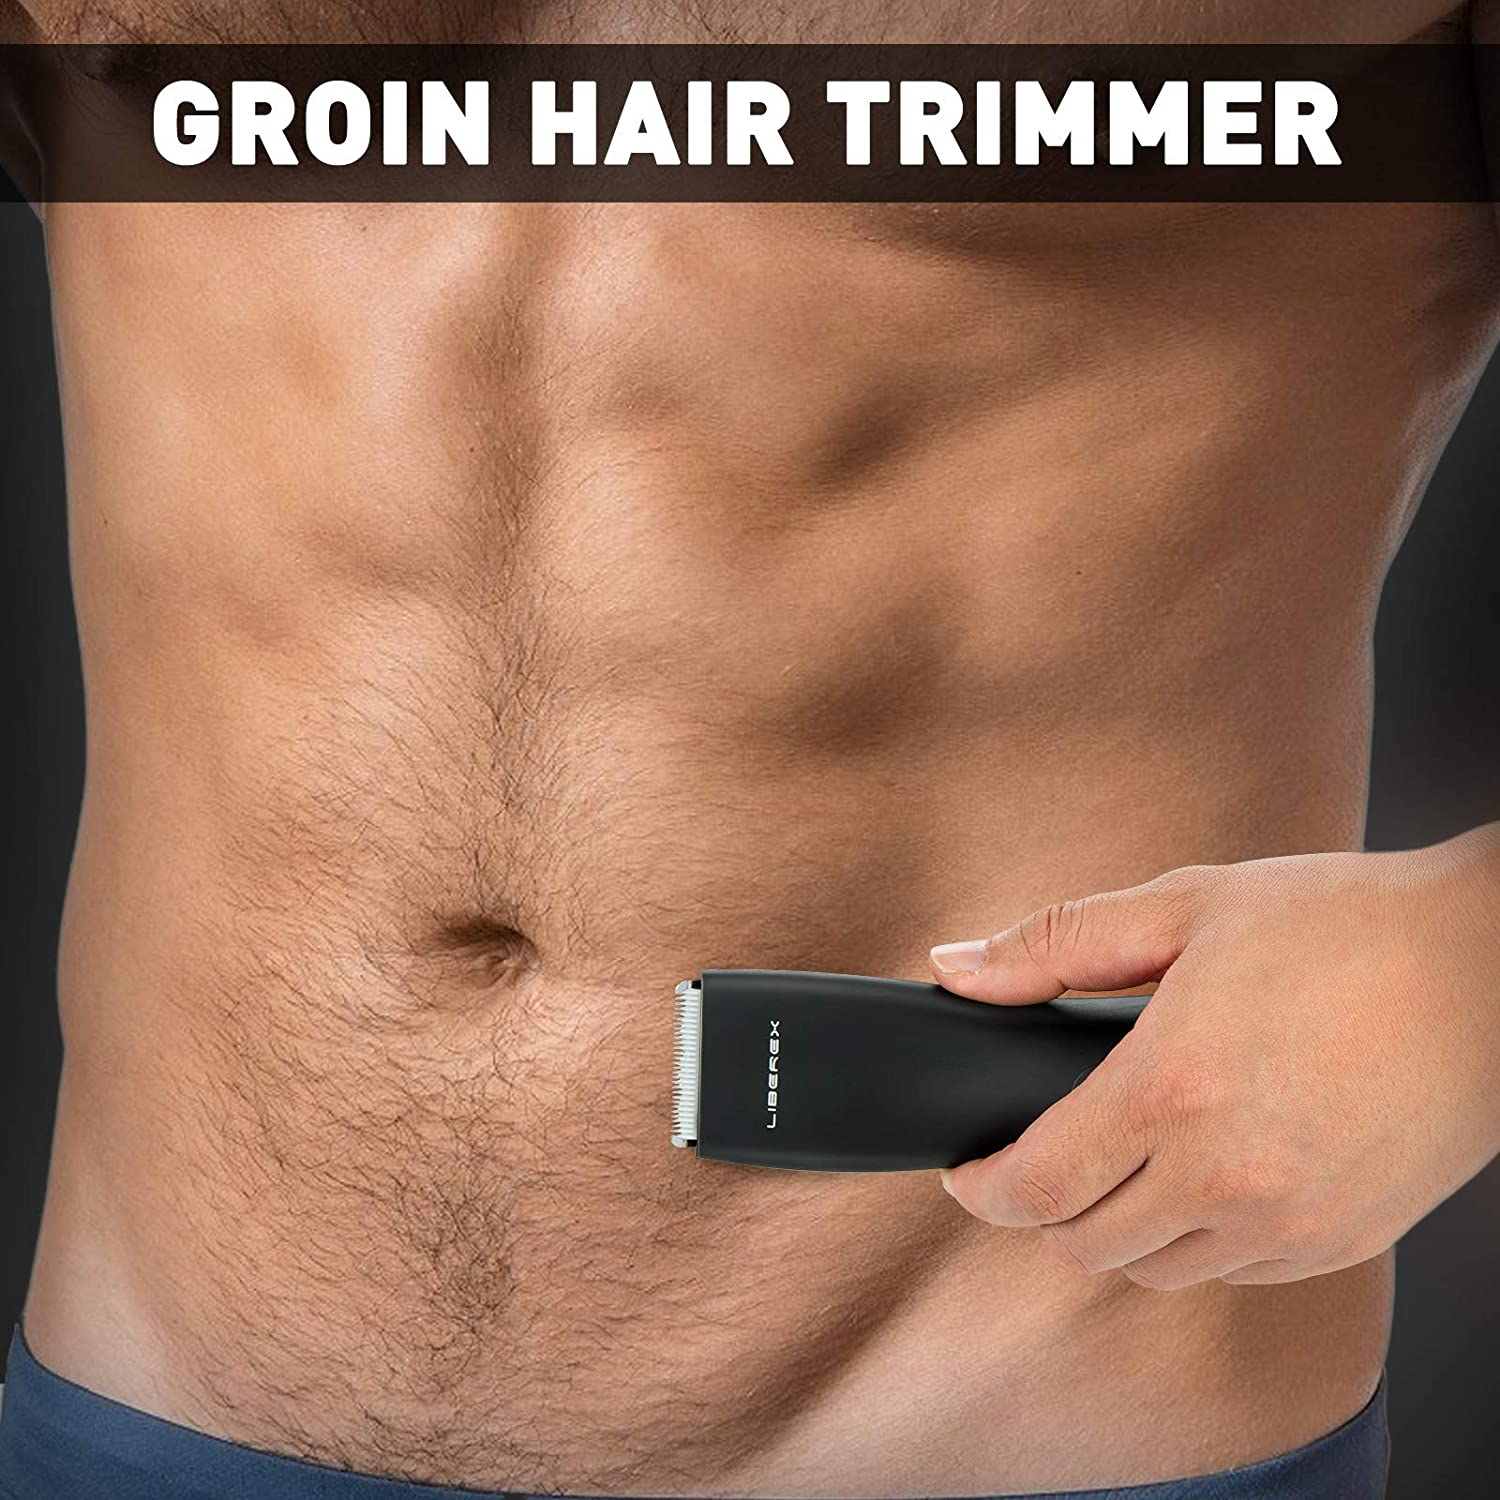 Liberex Electric Groin Hair Trimmer for Men - Pubic Hair Trimmer Body Grooming Clipper Rechargeable Ultimate Male Hygiene Razor enlarge